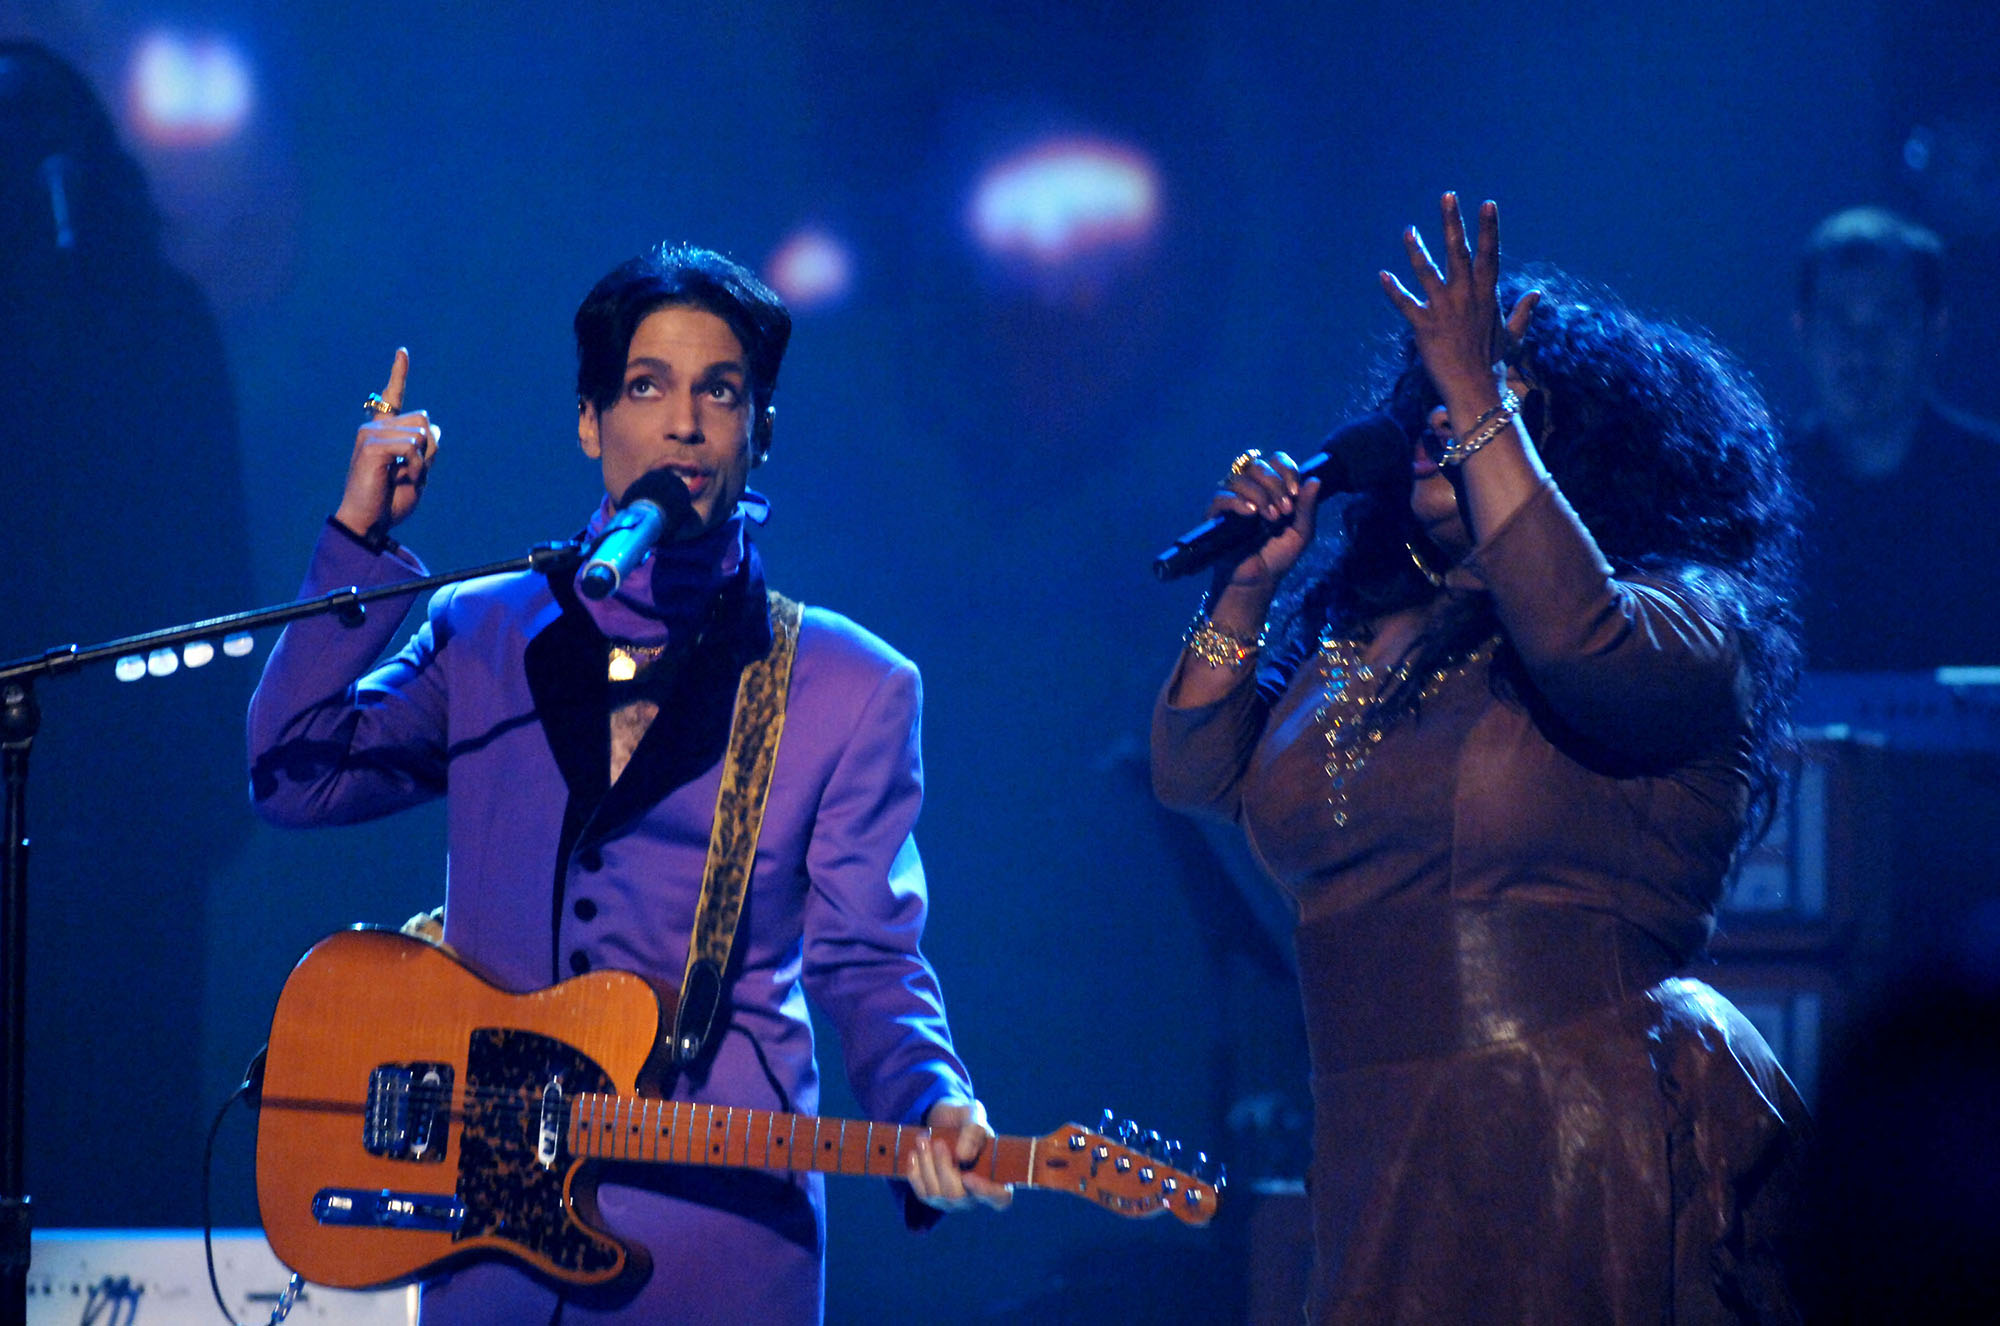 Prince and Chaka Khan perform  I Feel For You  during 6th Annual BET Awards - Show at Shrine Auditorium in Los Angeles, CA, United States. (Photo by M. Caulfield/WireImage)